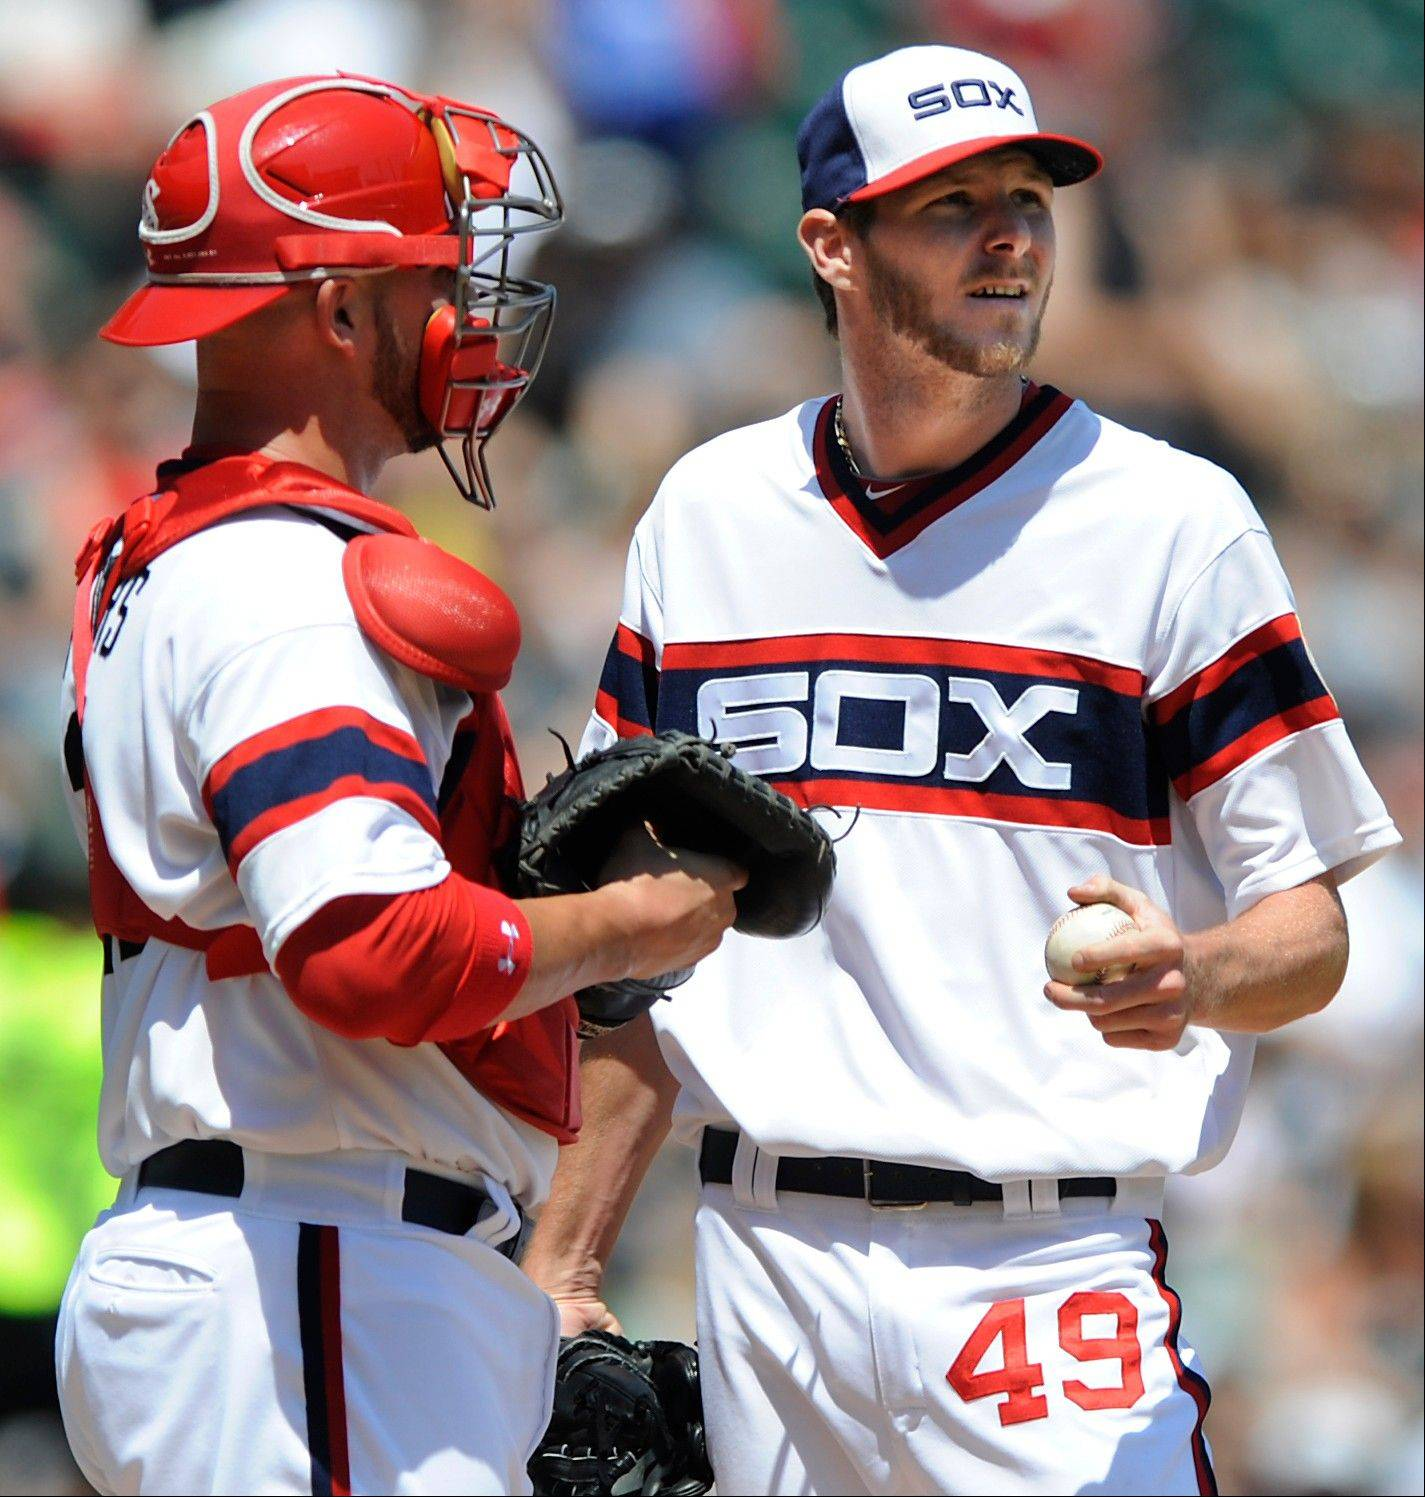 White Sox starting pitcher Chris Sale talks with catcher Tyler Flowers after giving up 2 runs in the fourth inning Sunday at U.S. Cellular Field.